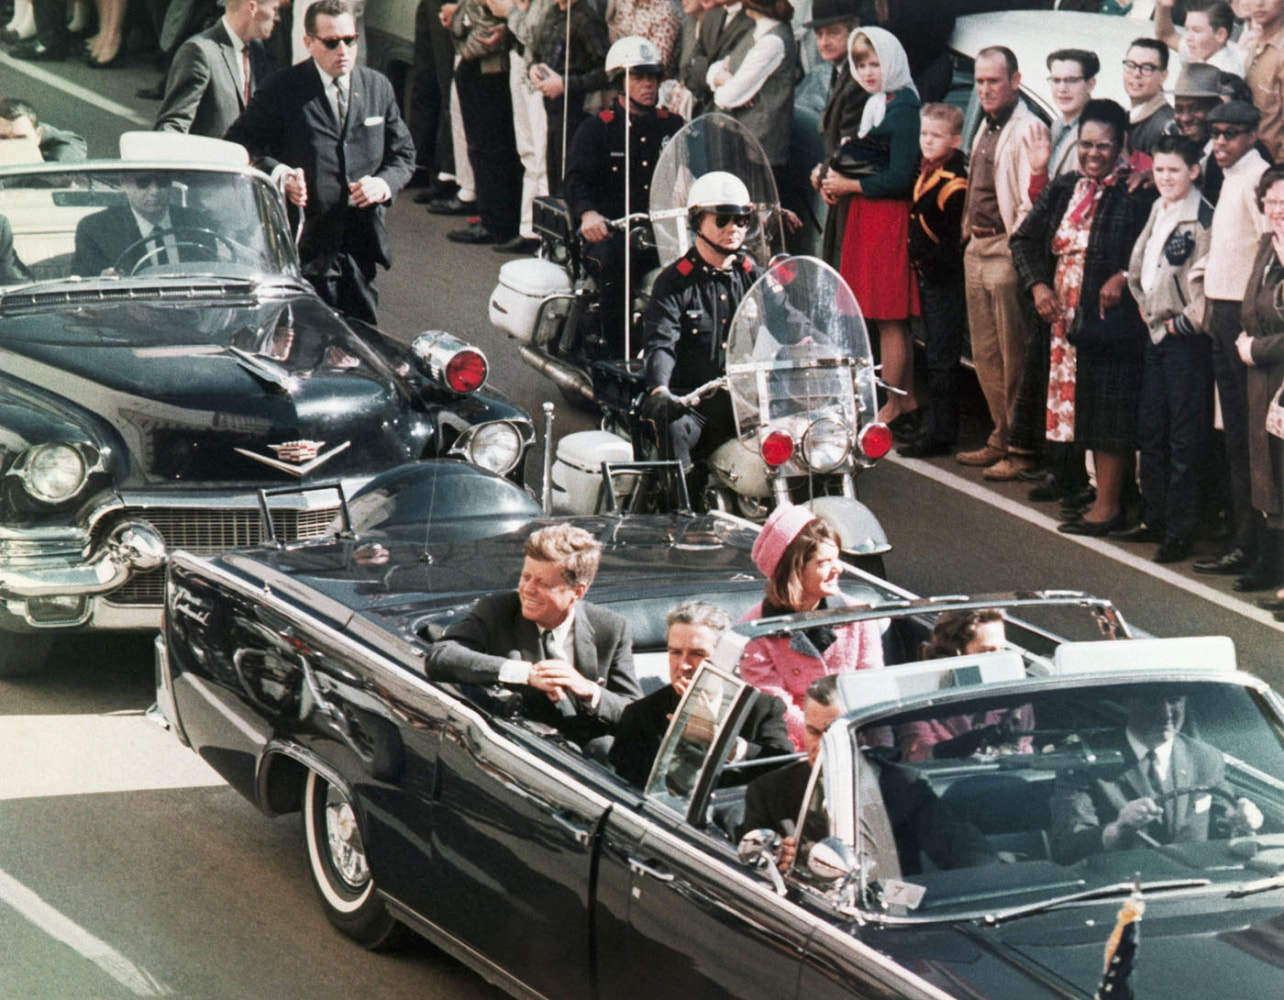 What Could Be in the New Kennedy Assassination Records?